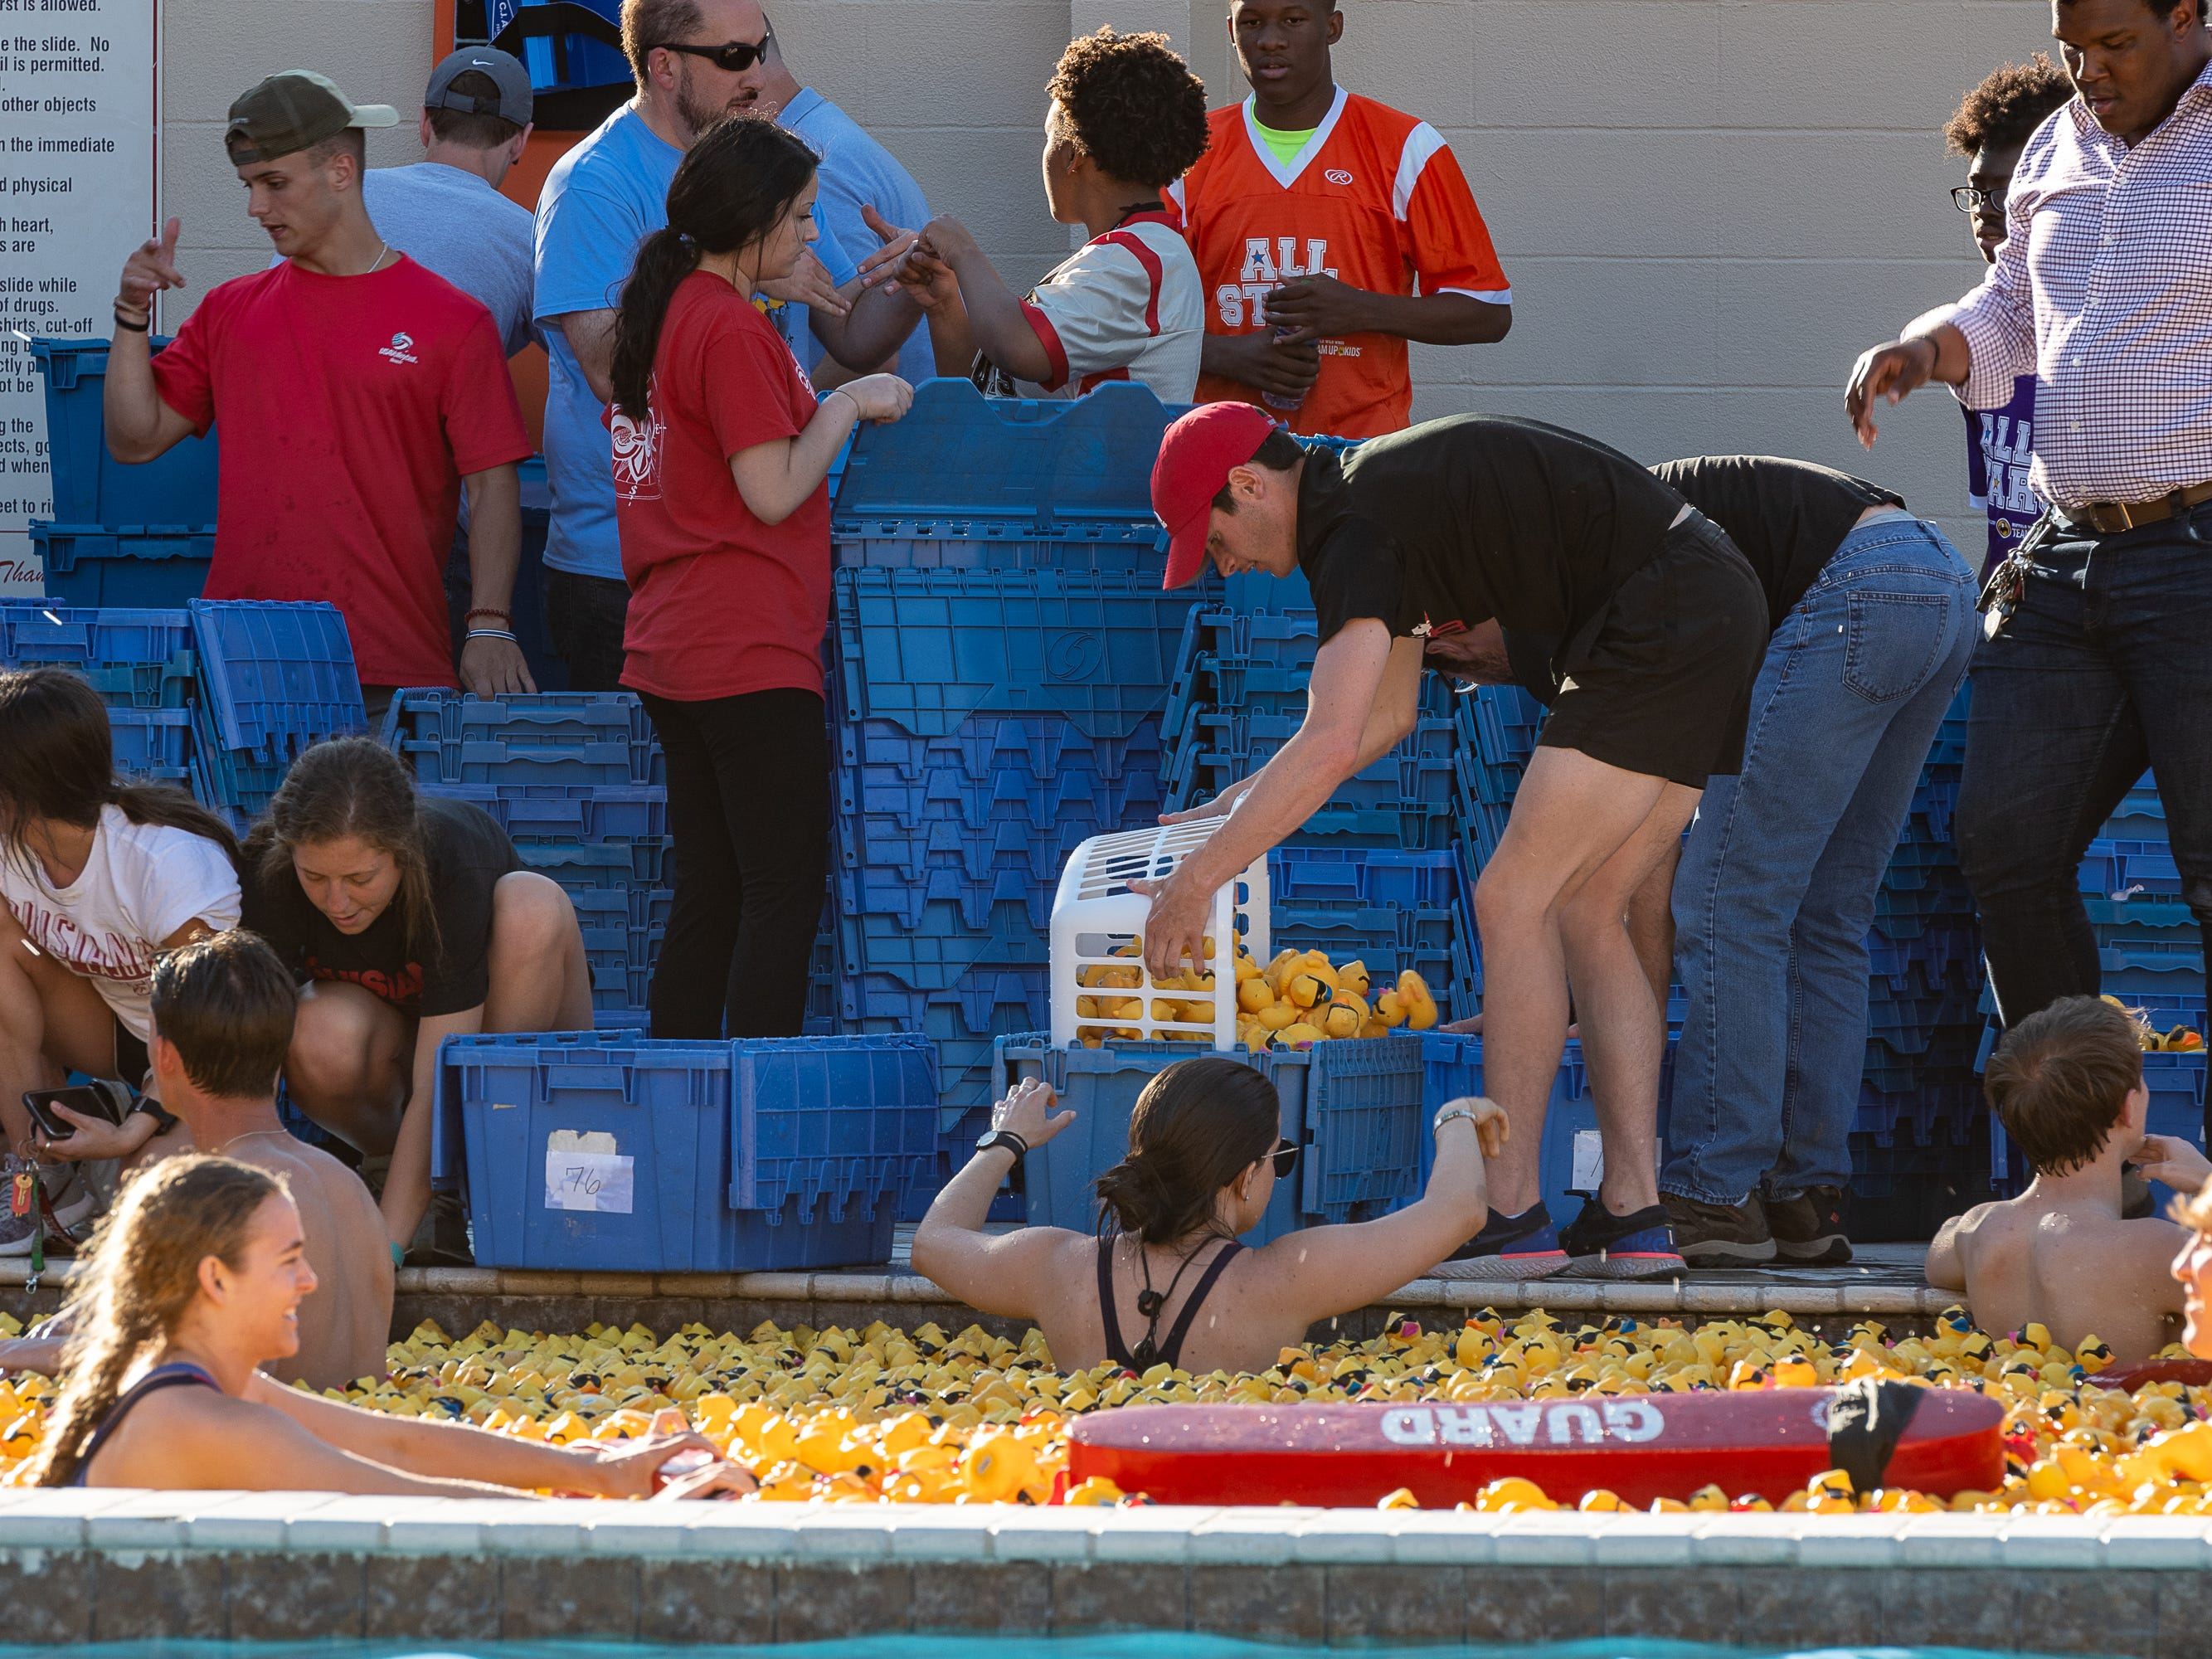 Volunteers work to collect all of the ducks at The Great Acadiana Running of the Ducks. Wednesday, April 10, 2019.